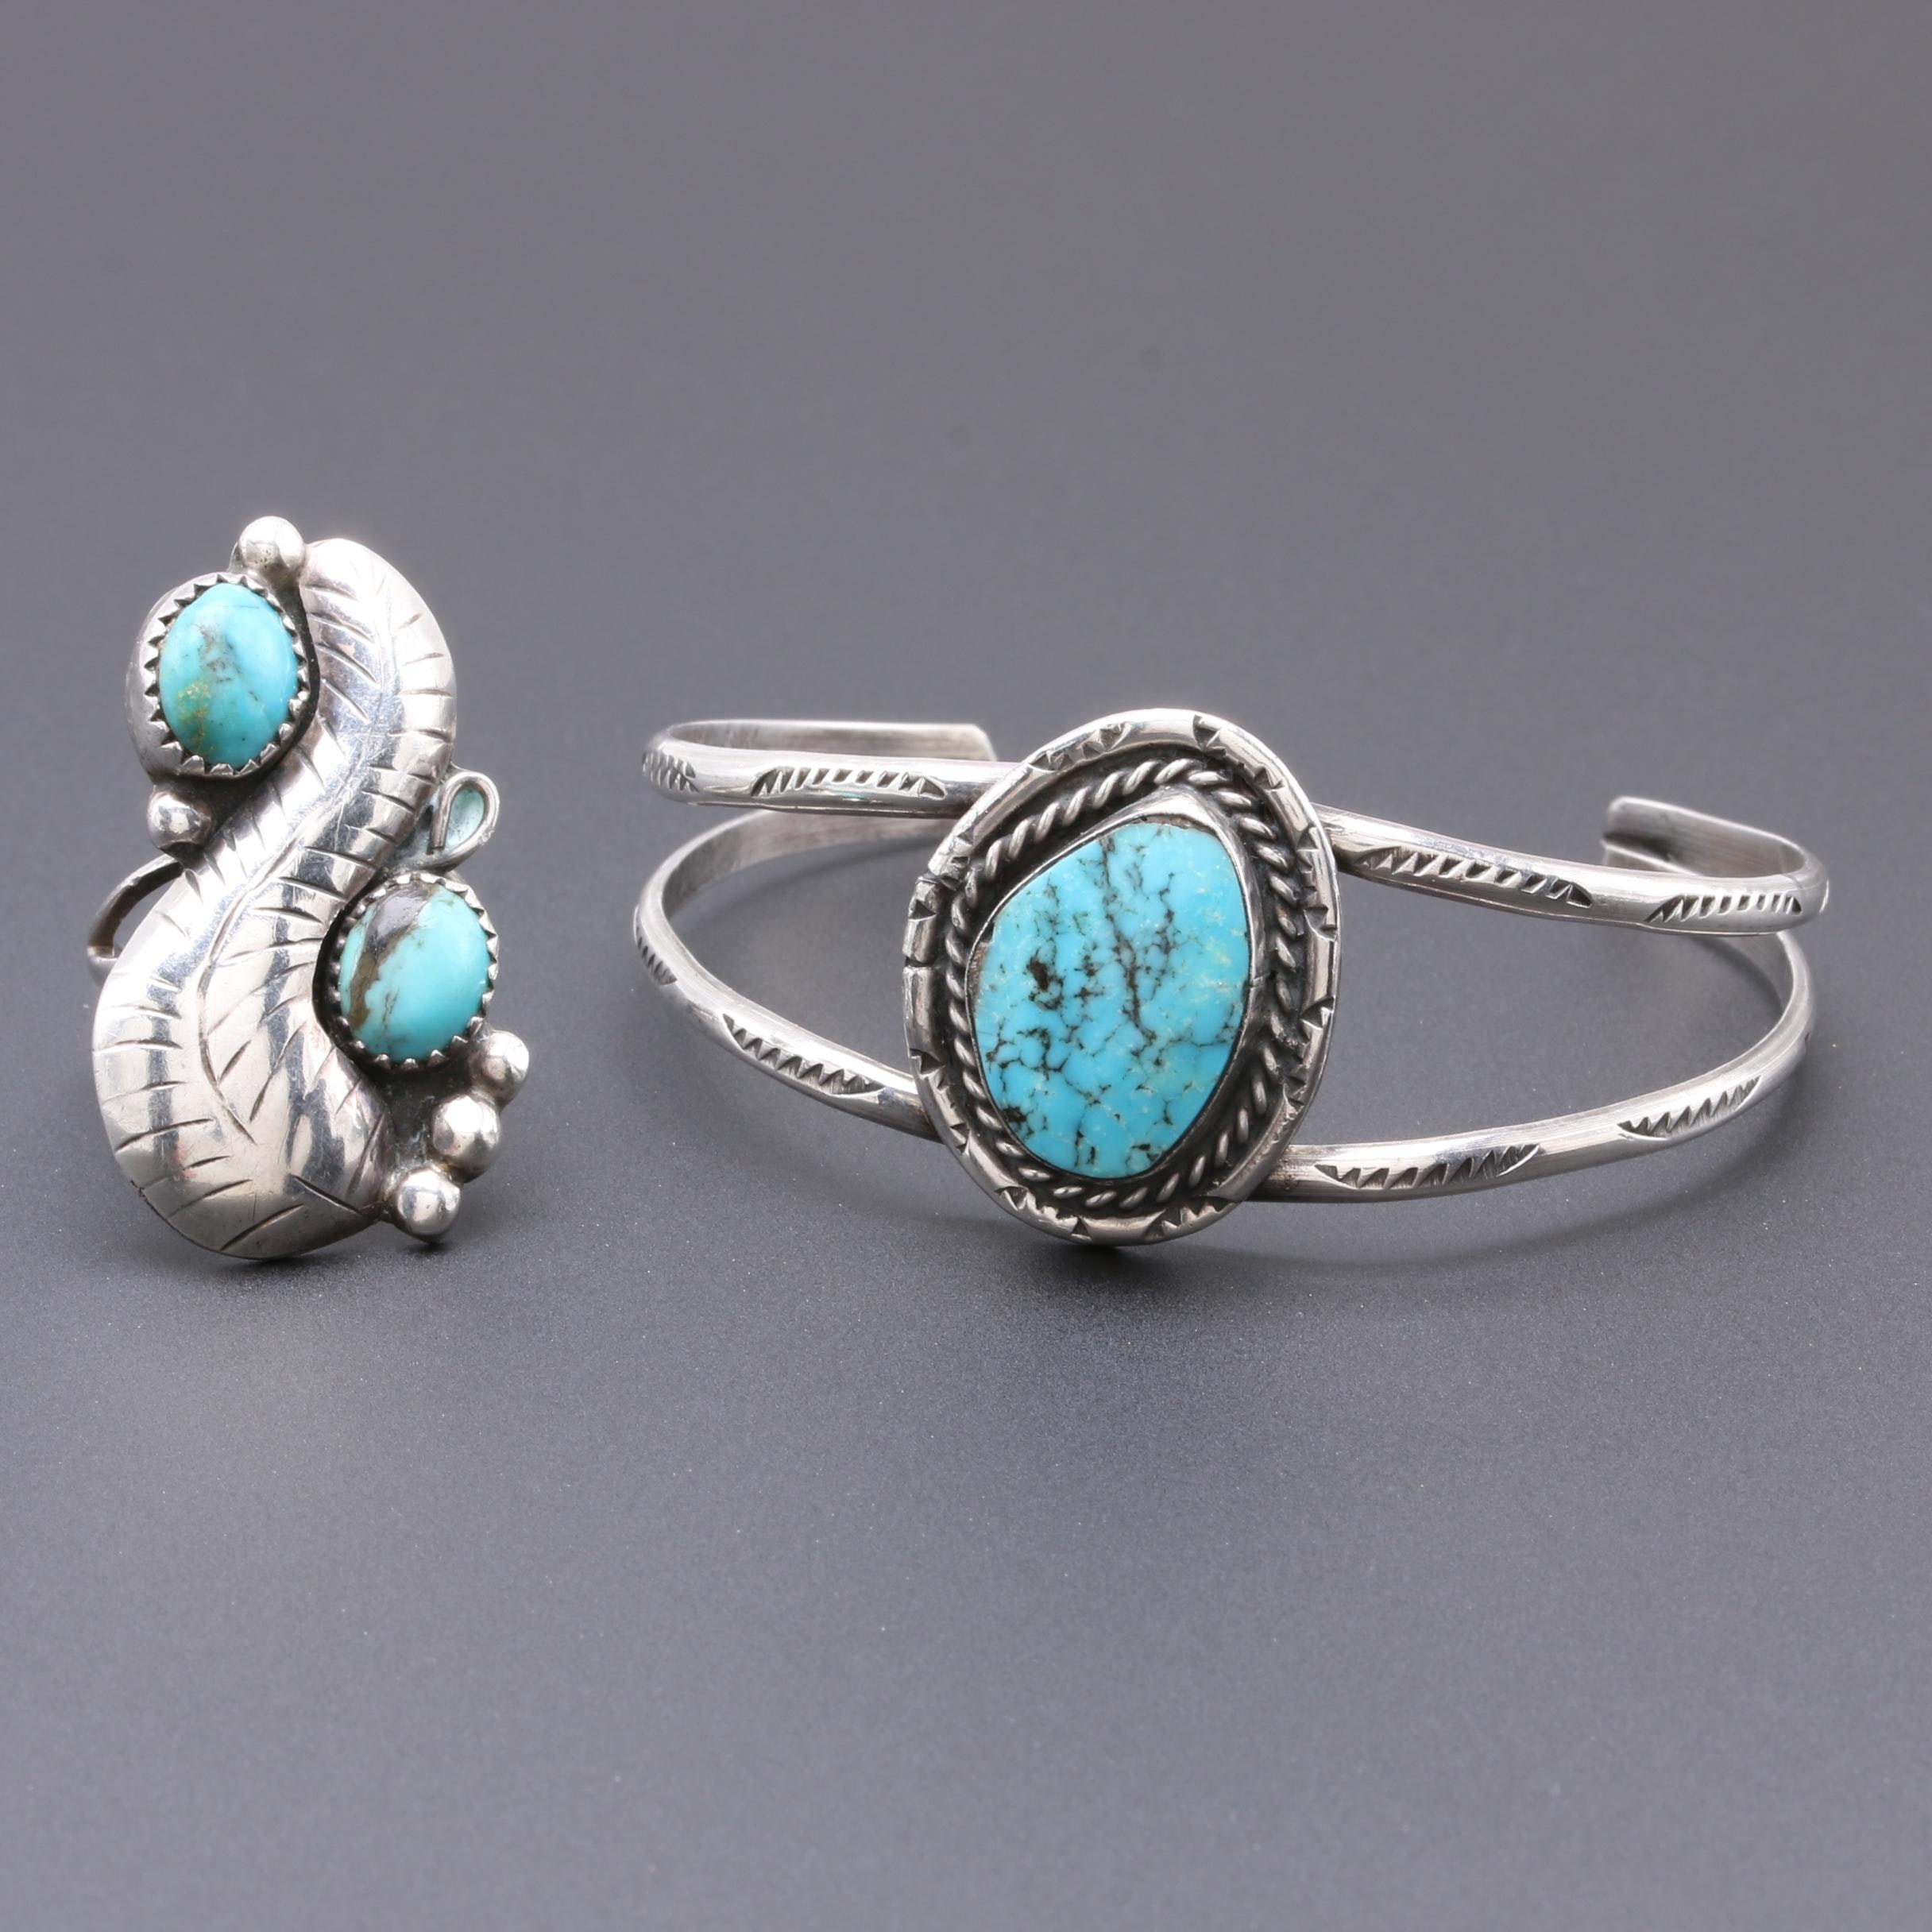 Southwestern Style Sterling Silver Turquoise Ring and Cuff Bracelet